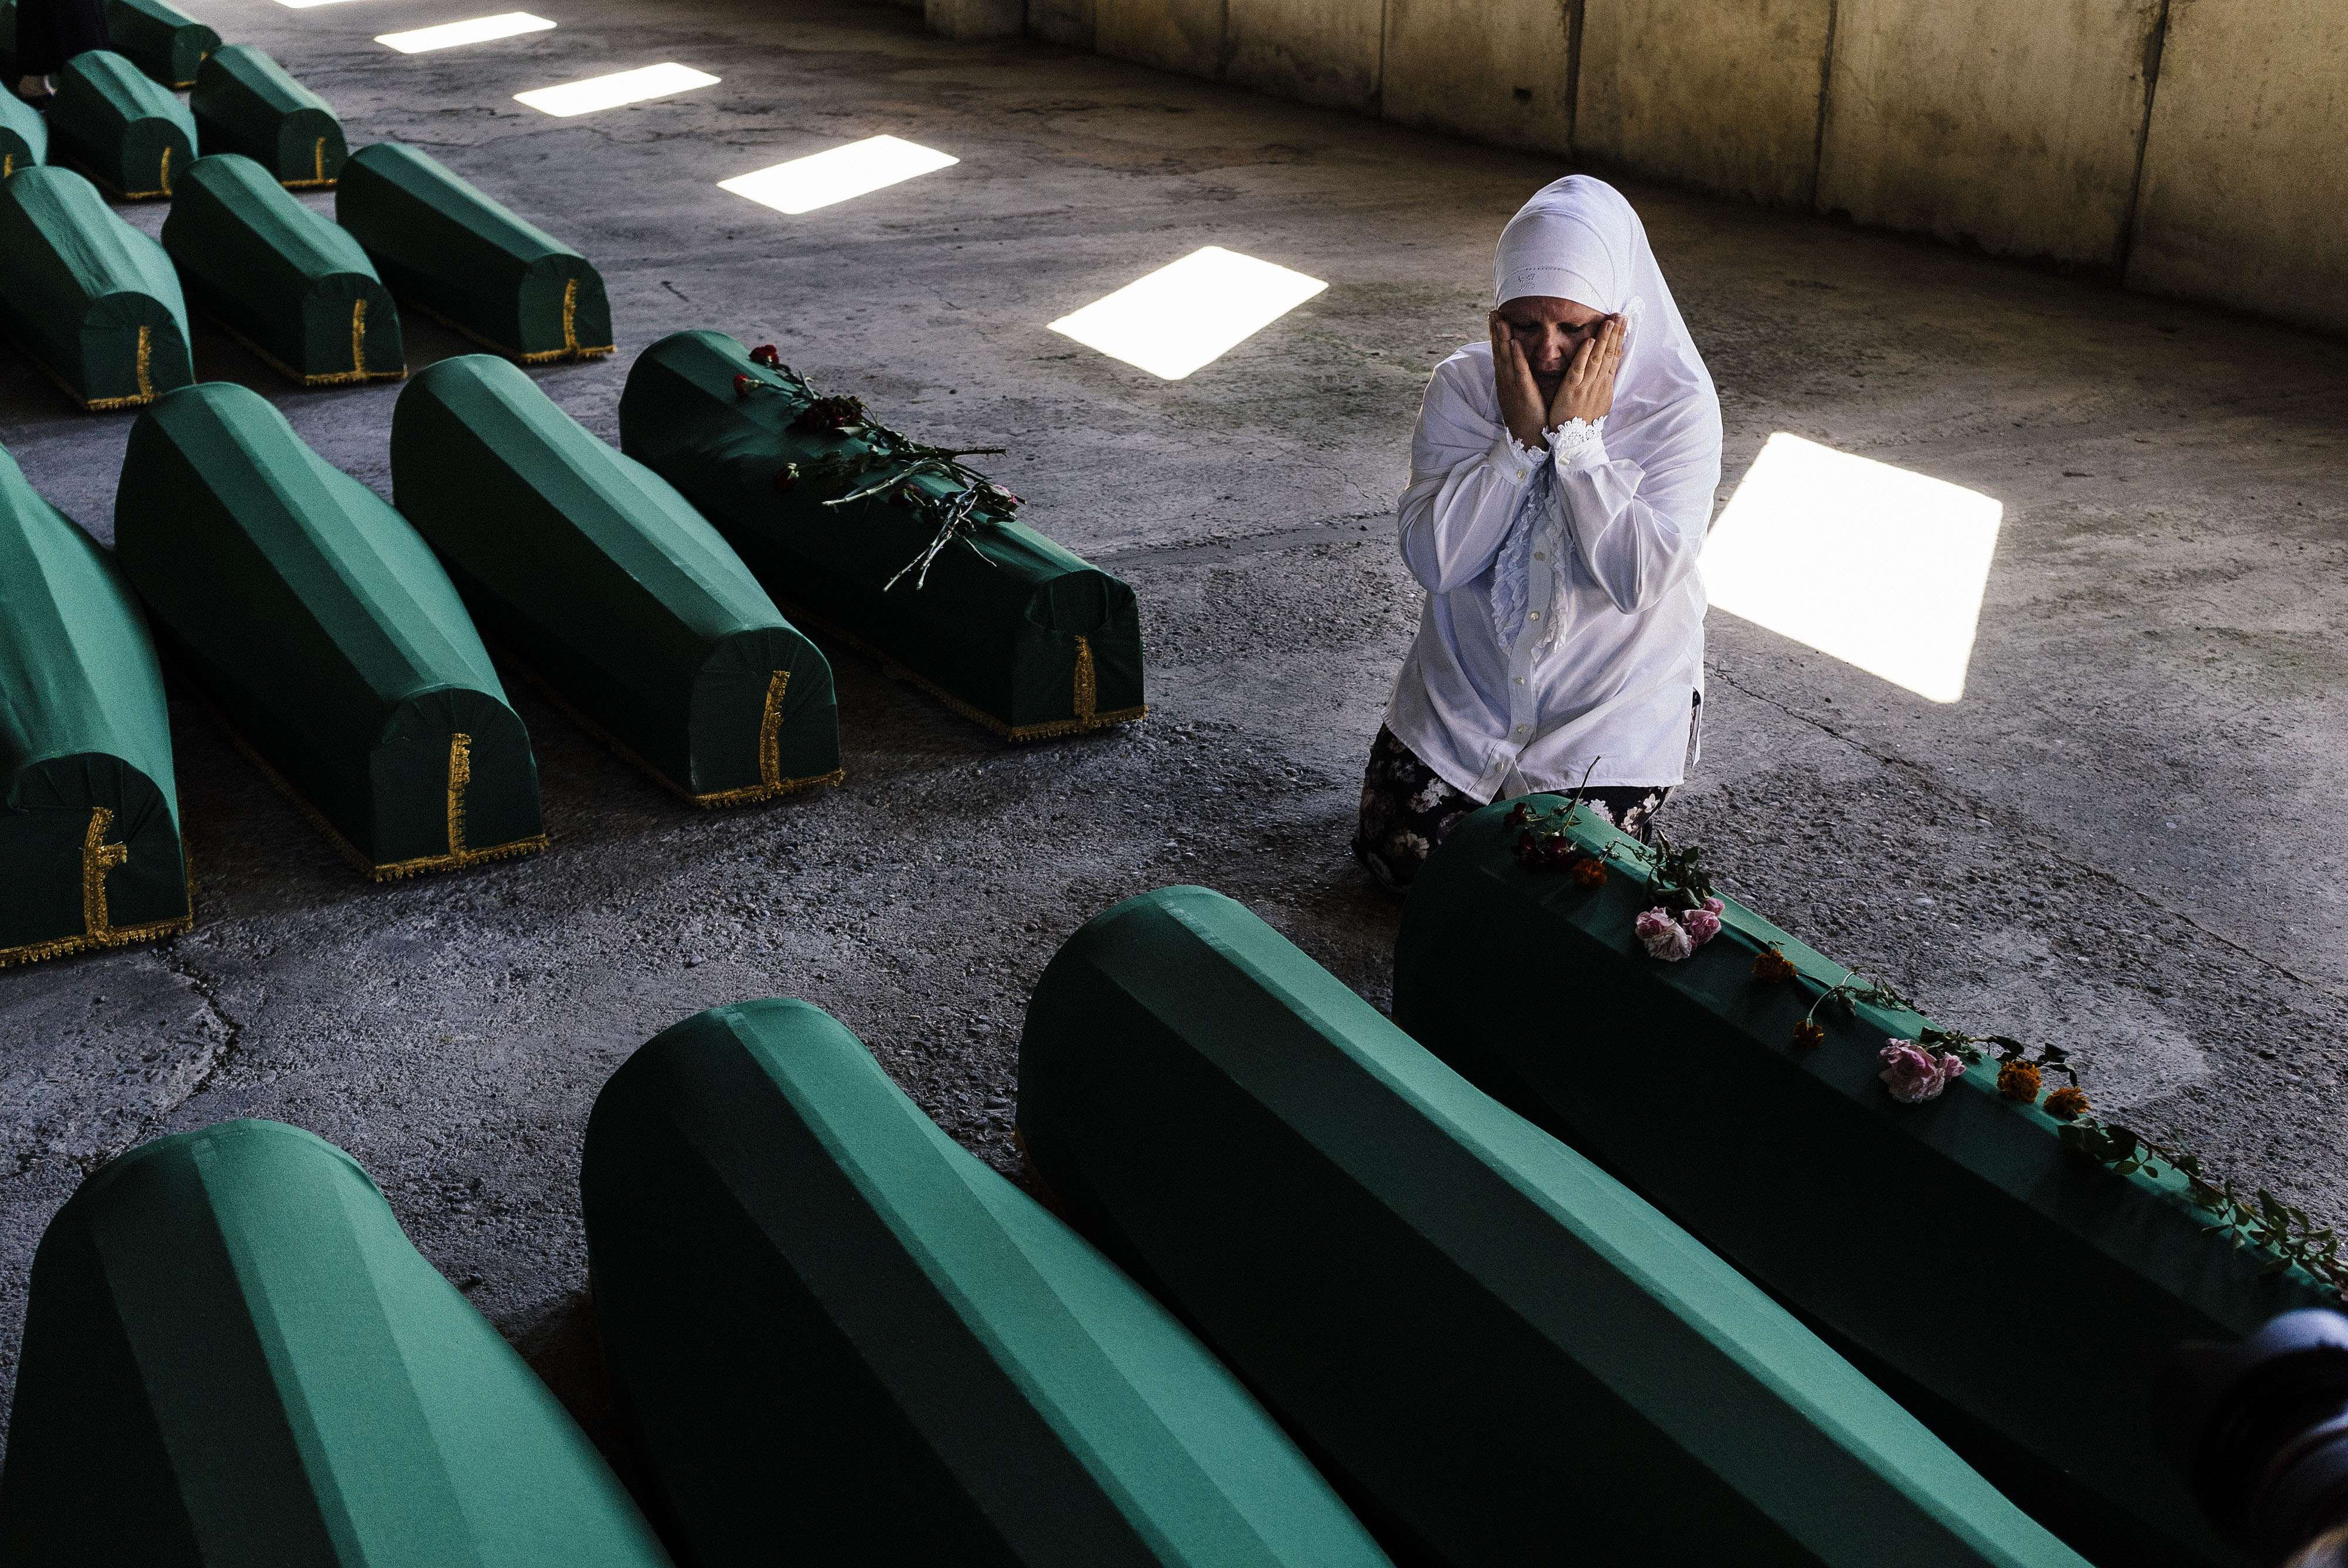 A Bosnian woman mourns next to the coffin of a relative among 136 newly identified victims of the 1995 Srebrenica massacre at the Potocari Memorial Center near the eastern Bosnian town of Srebrenica on July 10, 2015.